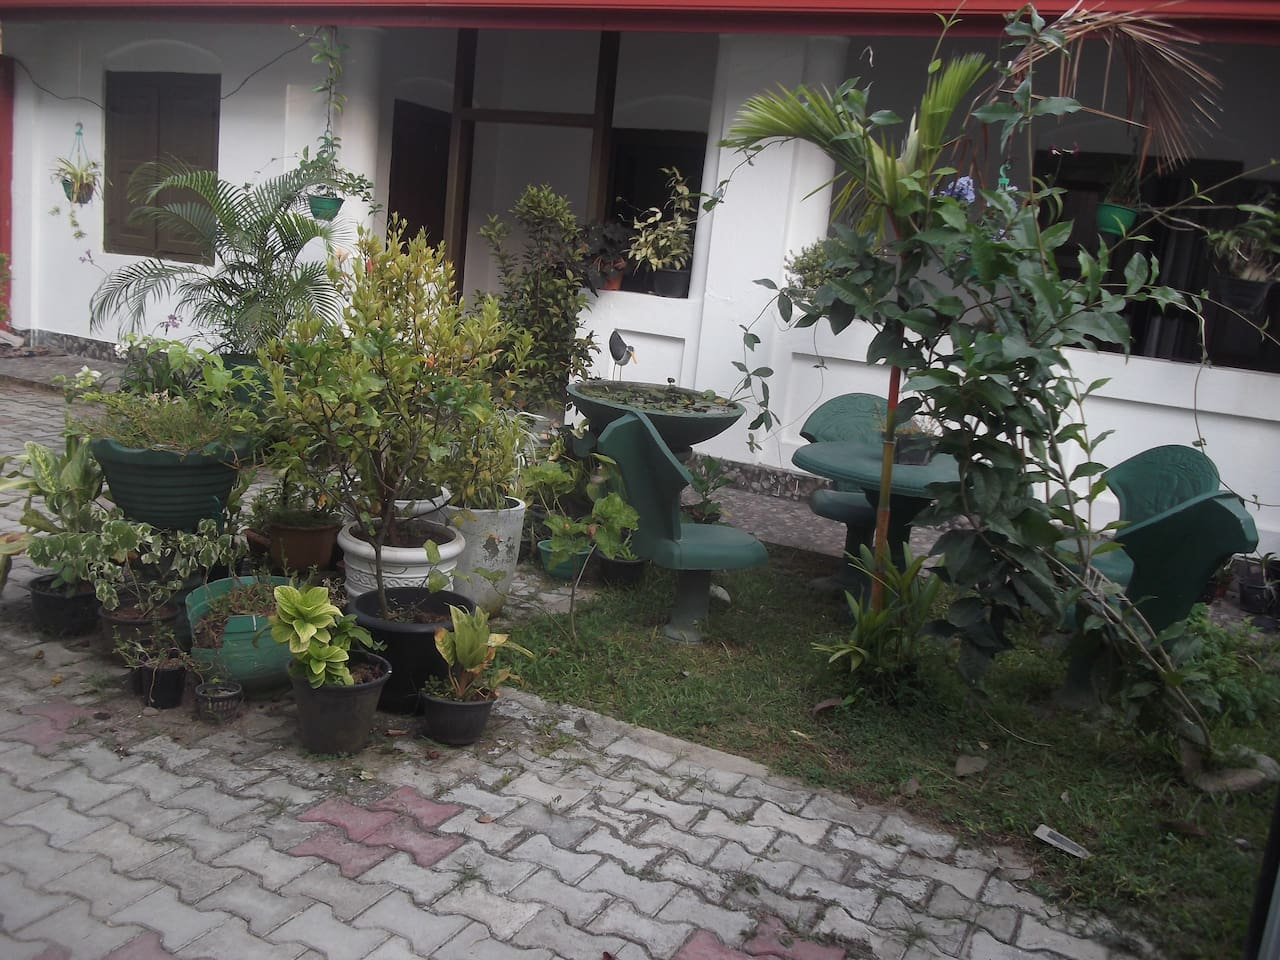 Front view of the property with a part of the well spacious garden with garden chairs and flowering plants which is ideal for relaxation,out door fun and reading books and leissurely thinking